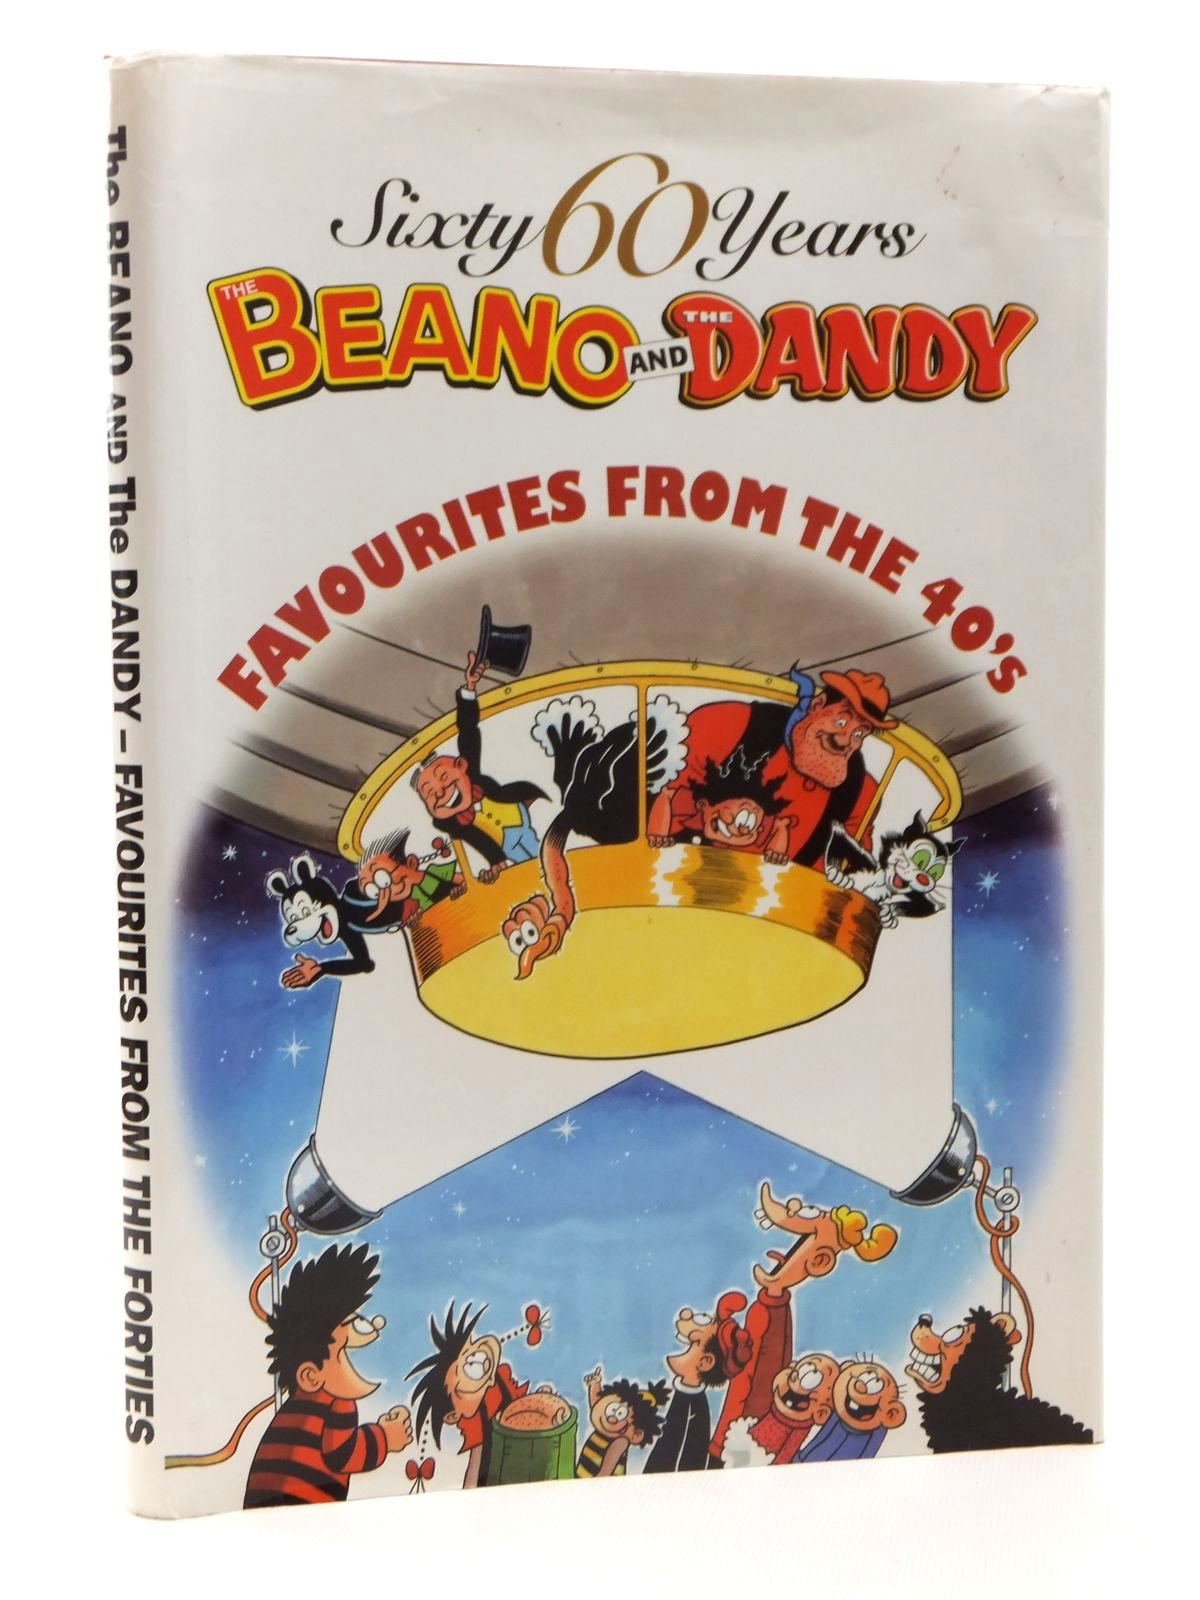 Photo of THE BEANO AND THE DANDY FAVOURITES FROM THE 40'S published by D.C. Thomson & Co Ltd. (STOCK CODE: 1815475)  for sale by Stella & Rose's Books